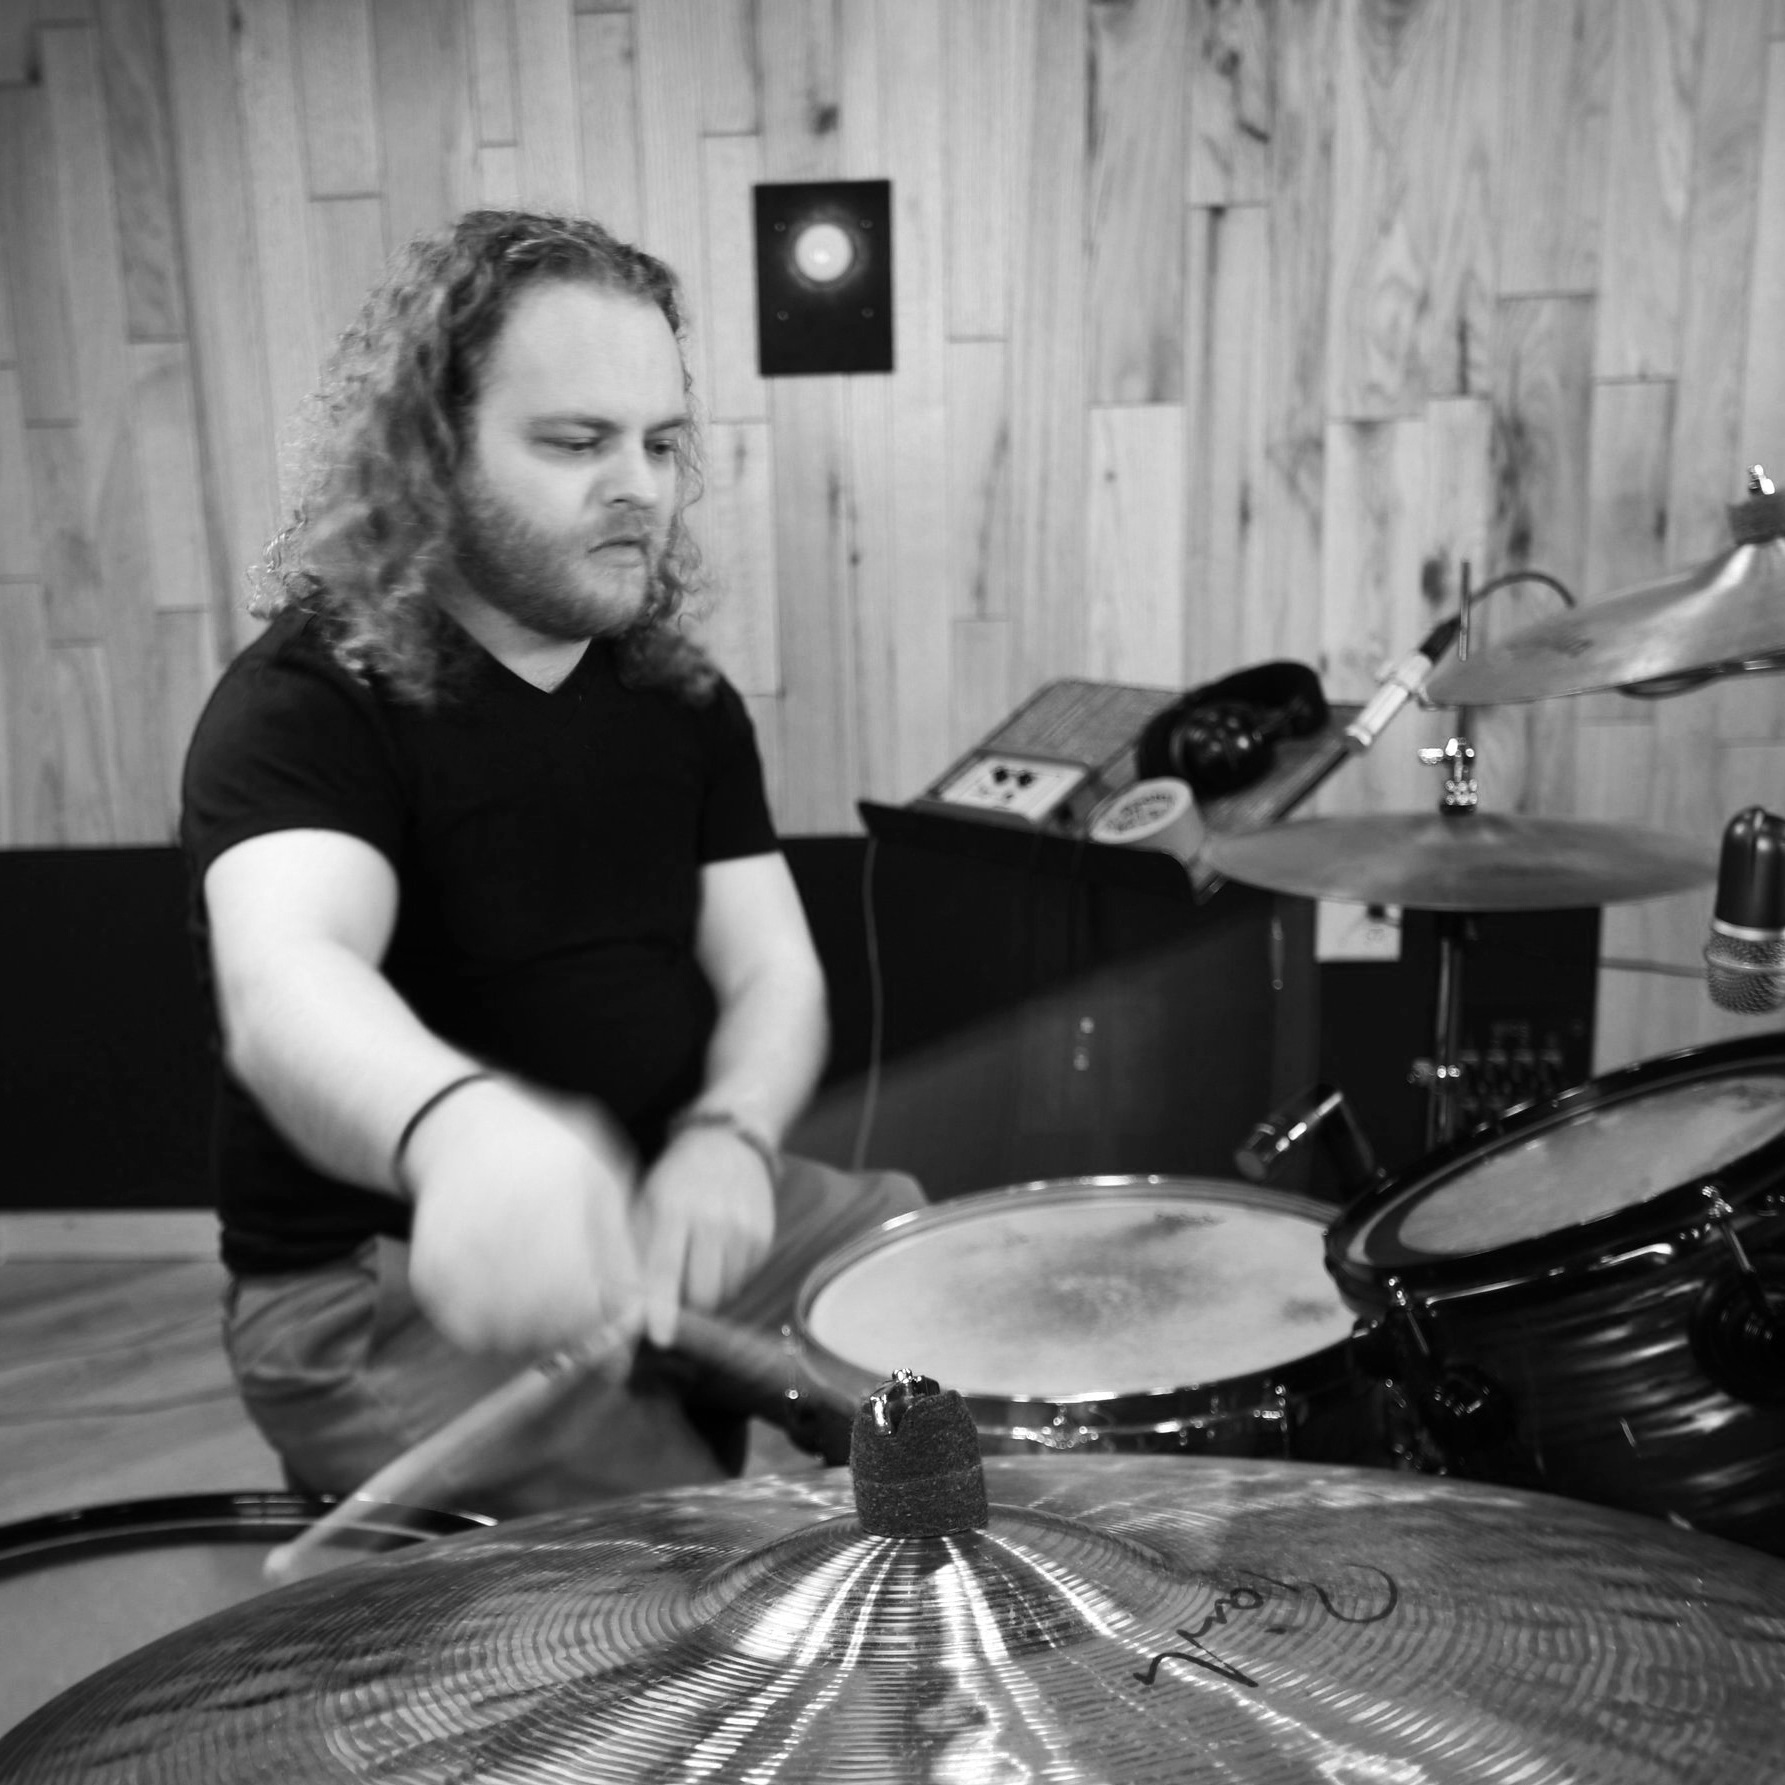 Session Drumming - As a drummer for 20 years, I've covered a lot of different genres and stages. I have professional training in all kinds of classical and ethnic percussion, and can play a wide assortment of genres and patterns on drum set.- $15 / hour- Played in a number of bands across genres, and professional percussion training- Samples